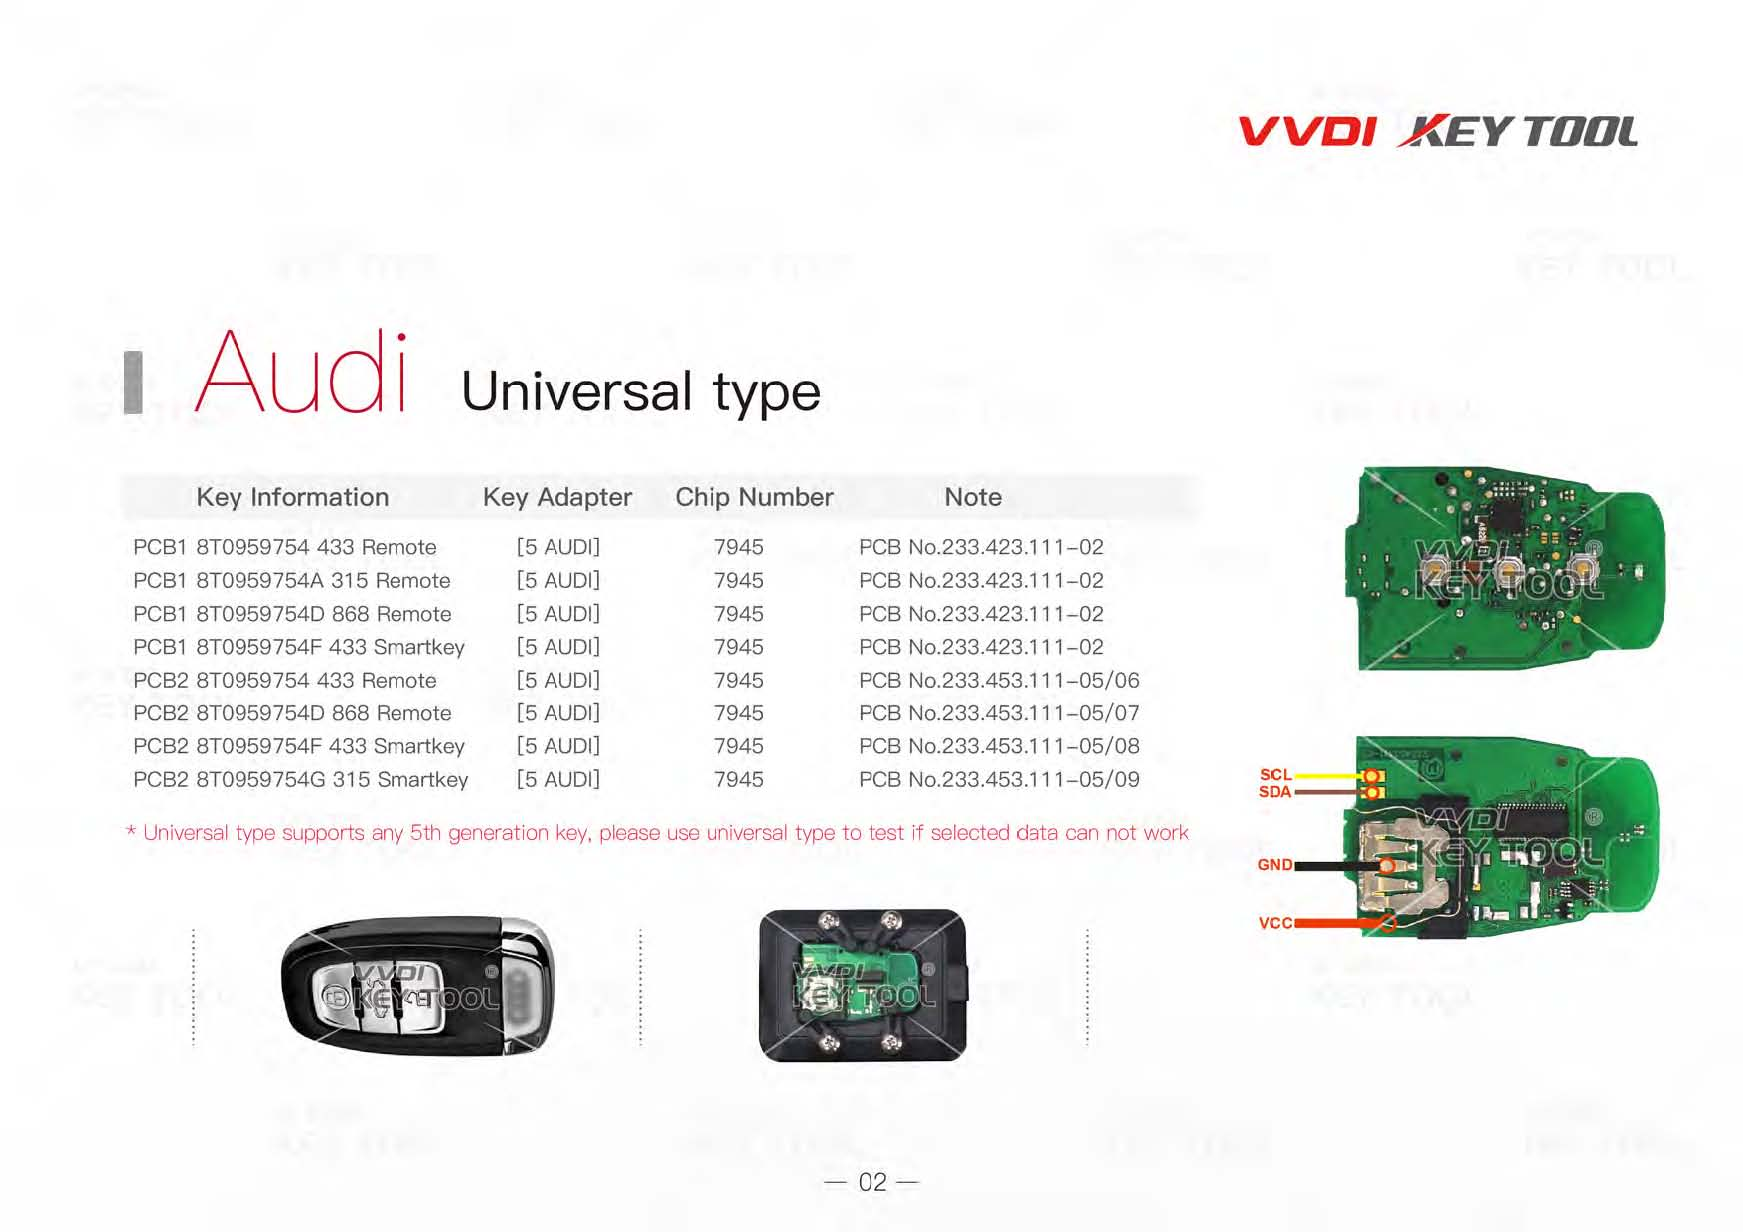 hight resolution of vvdi key tool remote unlock wiring diagram all here car key wiring diagram for cj8 smart key wiring diagram